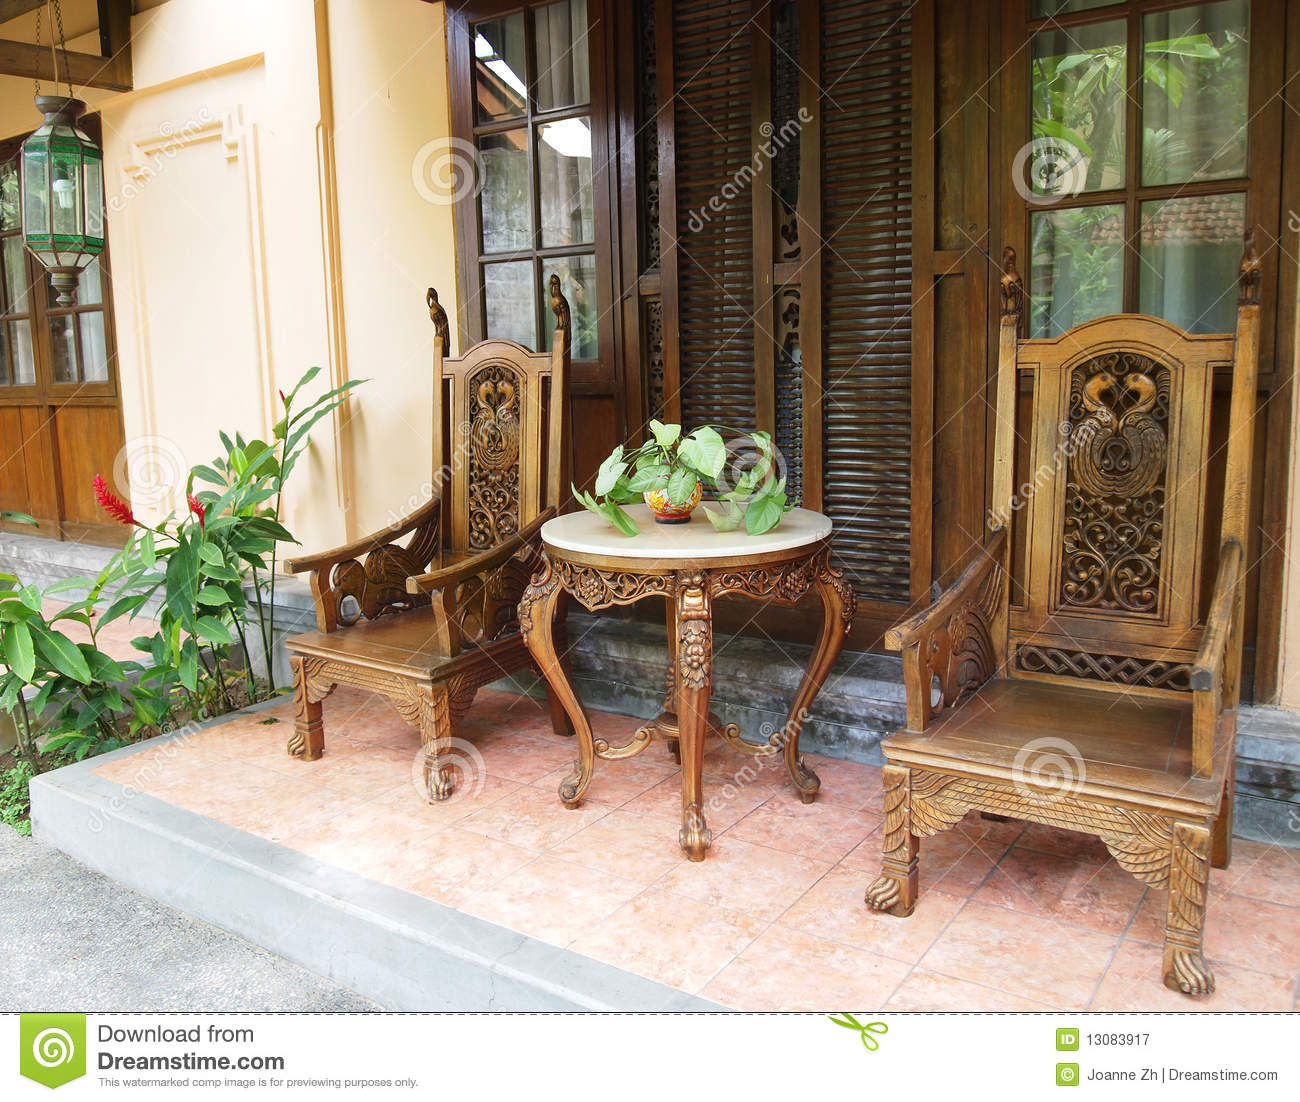 Balinese Furniture On Patio Stock Image - Image: 13083917